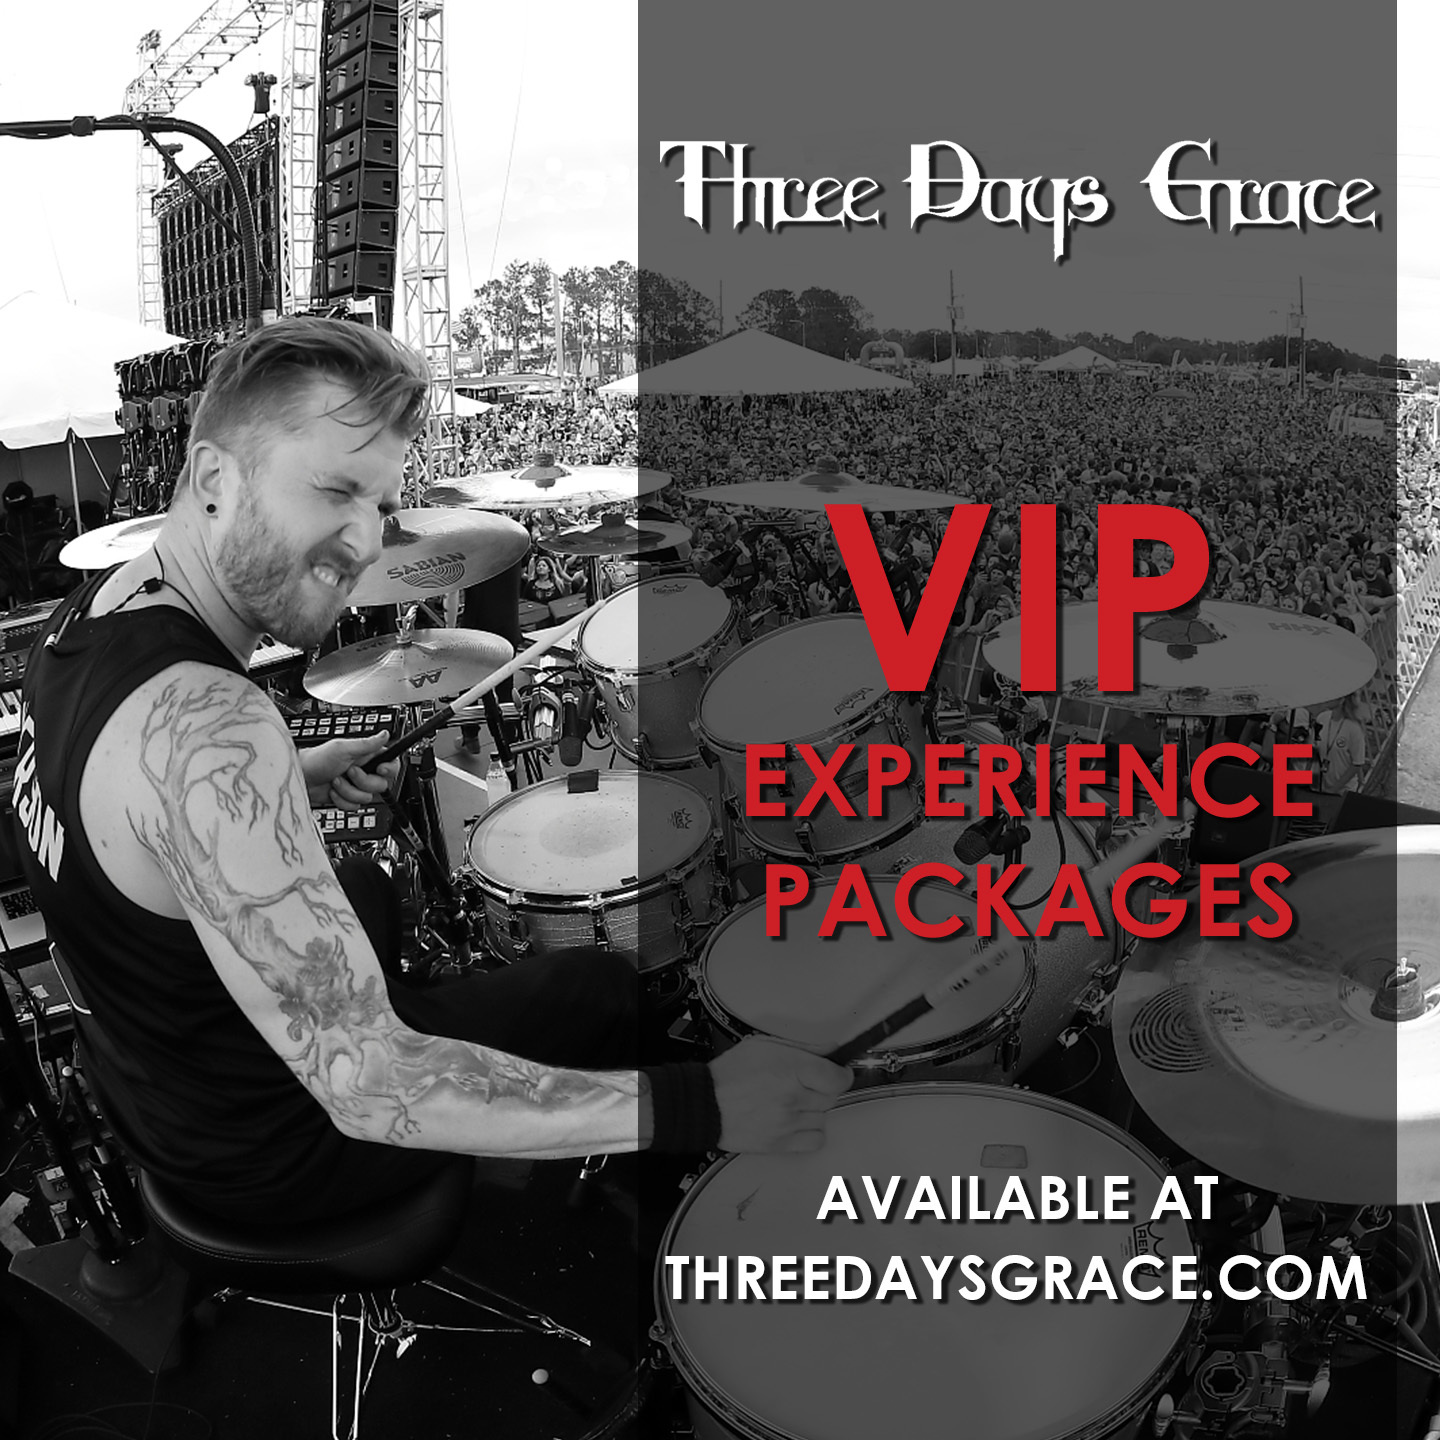 https://threedaysgrace.com/2018/07/26/vip-experience-packages-for-the-outsider-tour-in-c/